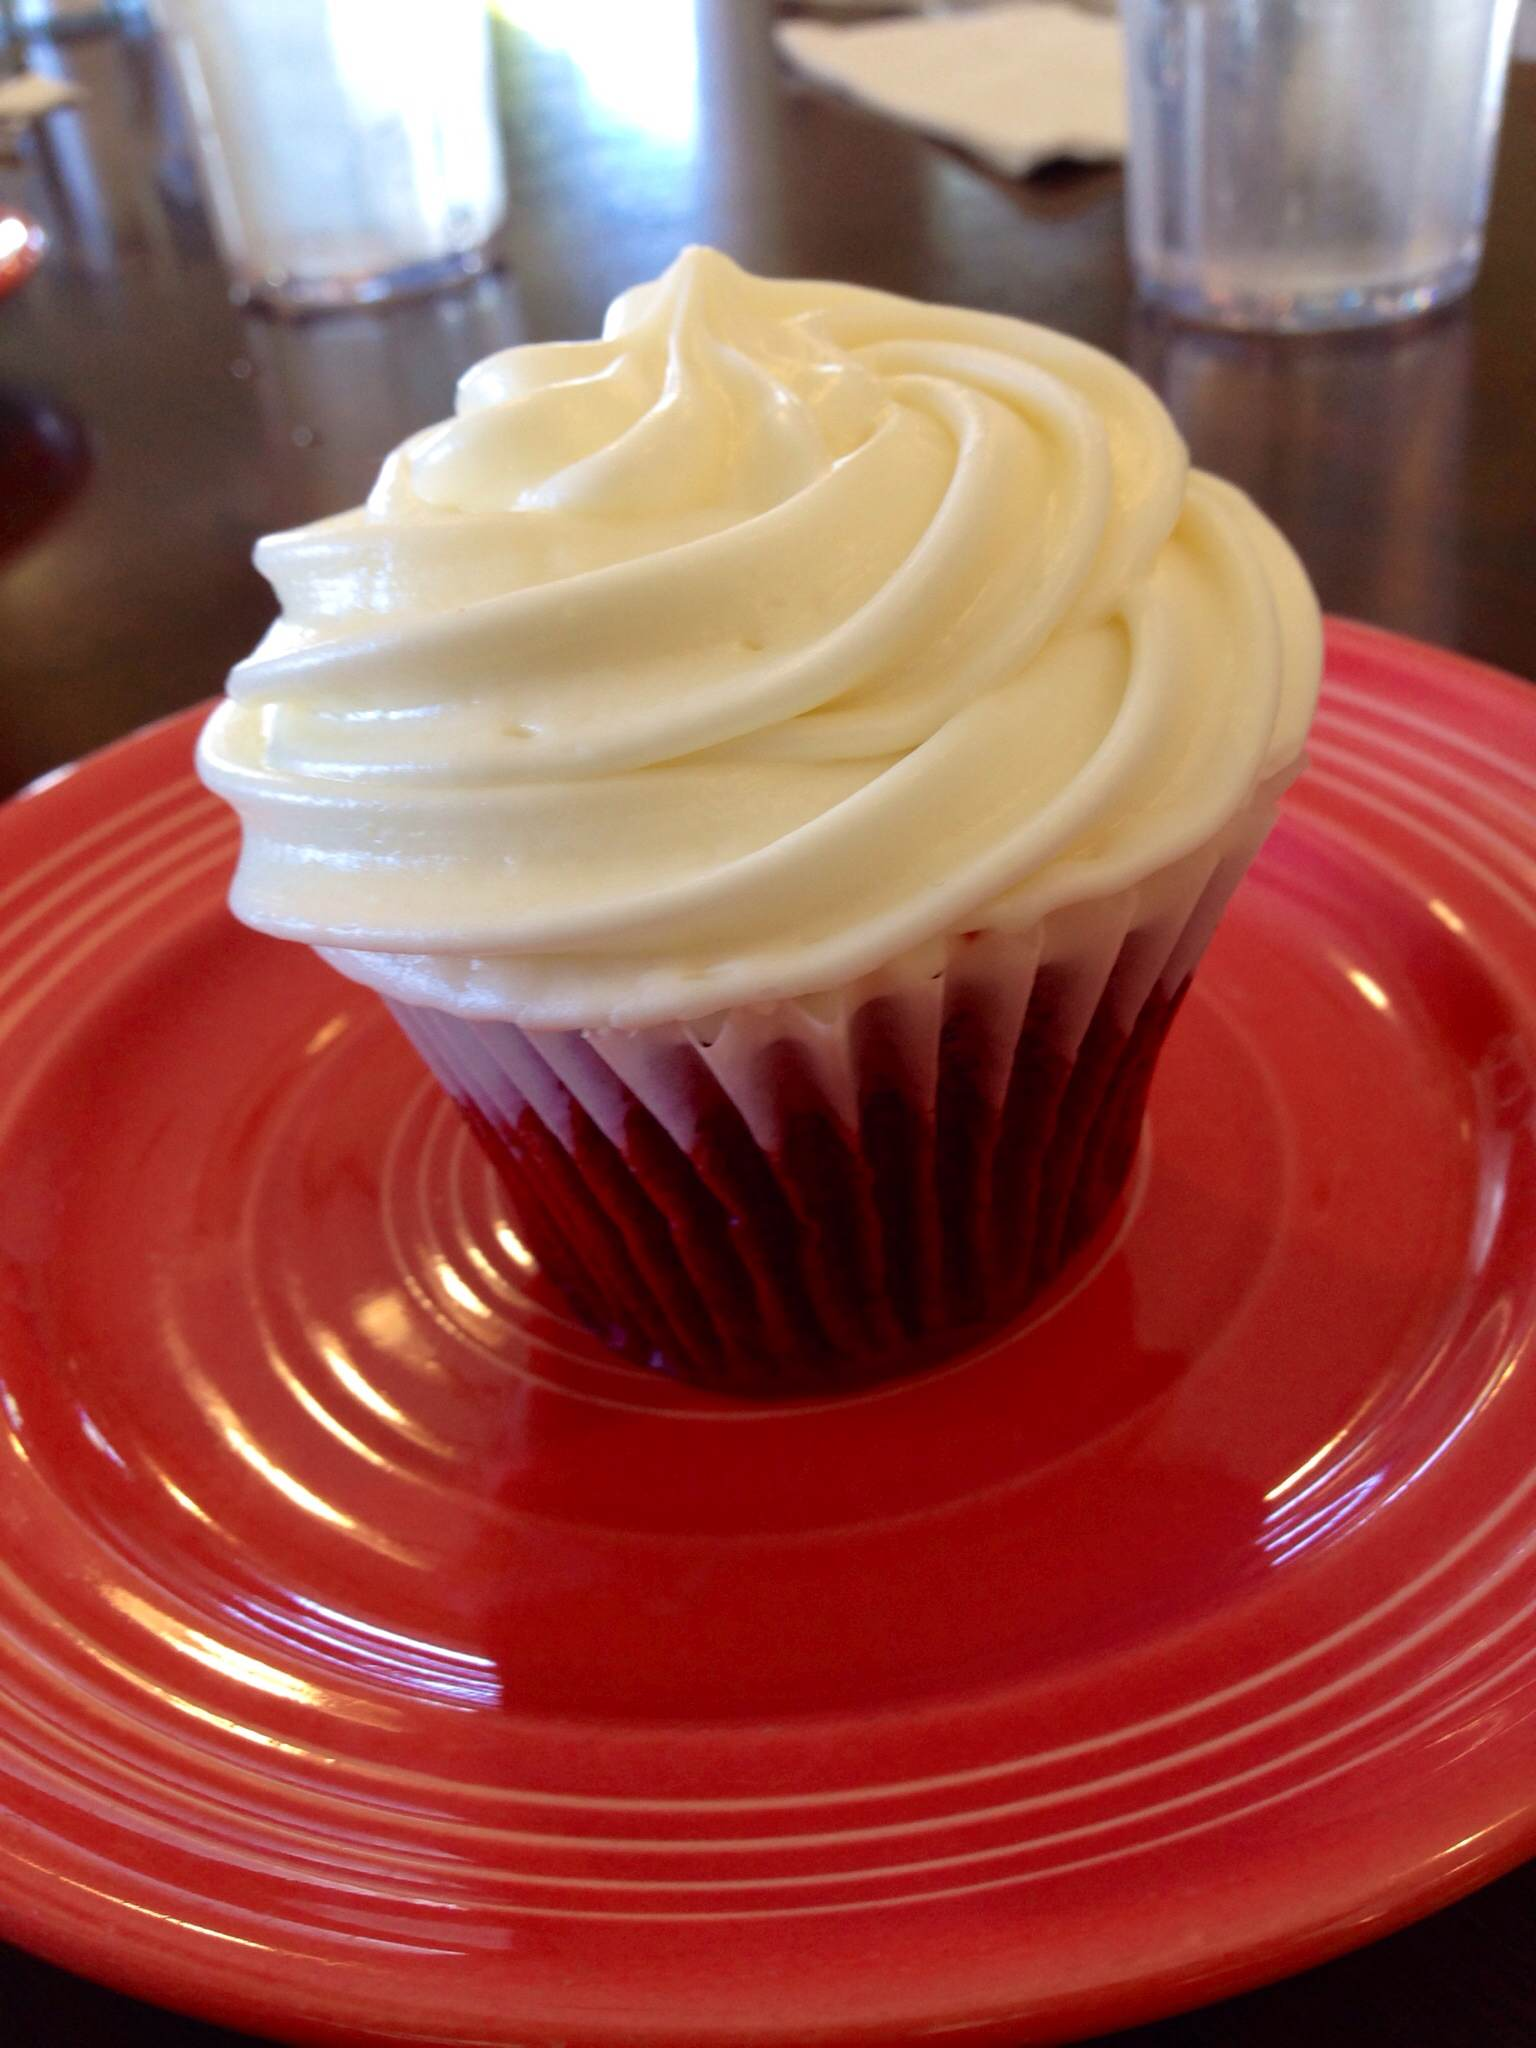 Red Velvet cupcake from Jongewaard's. Photo by Jacqueline Macauley